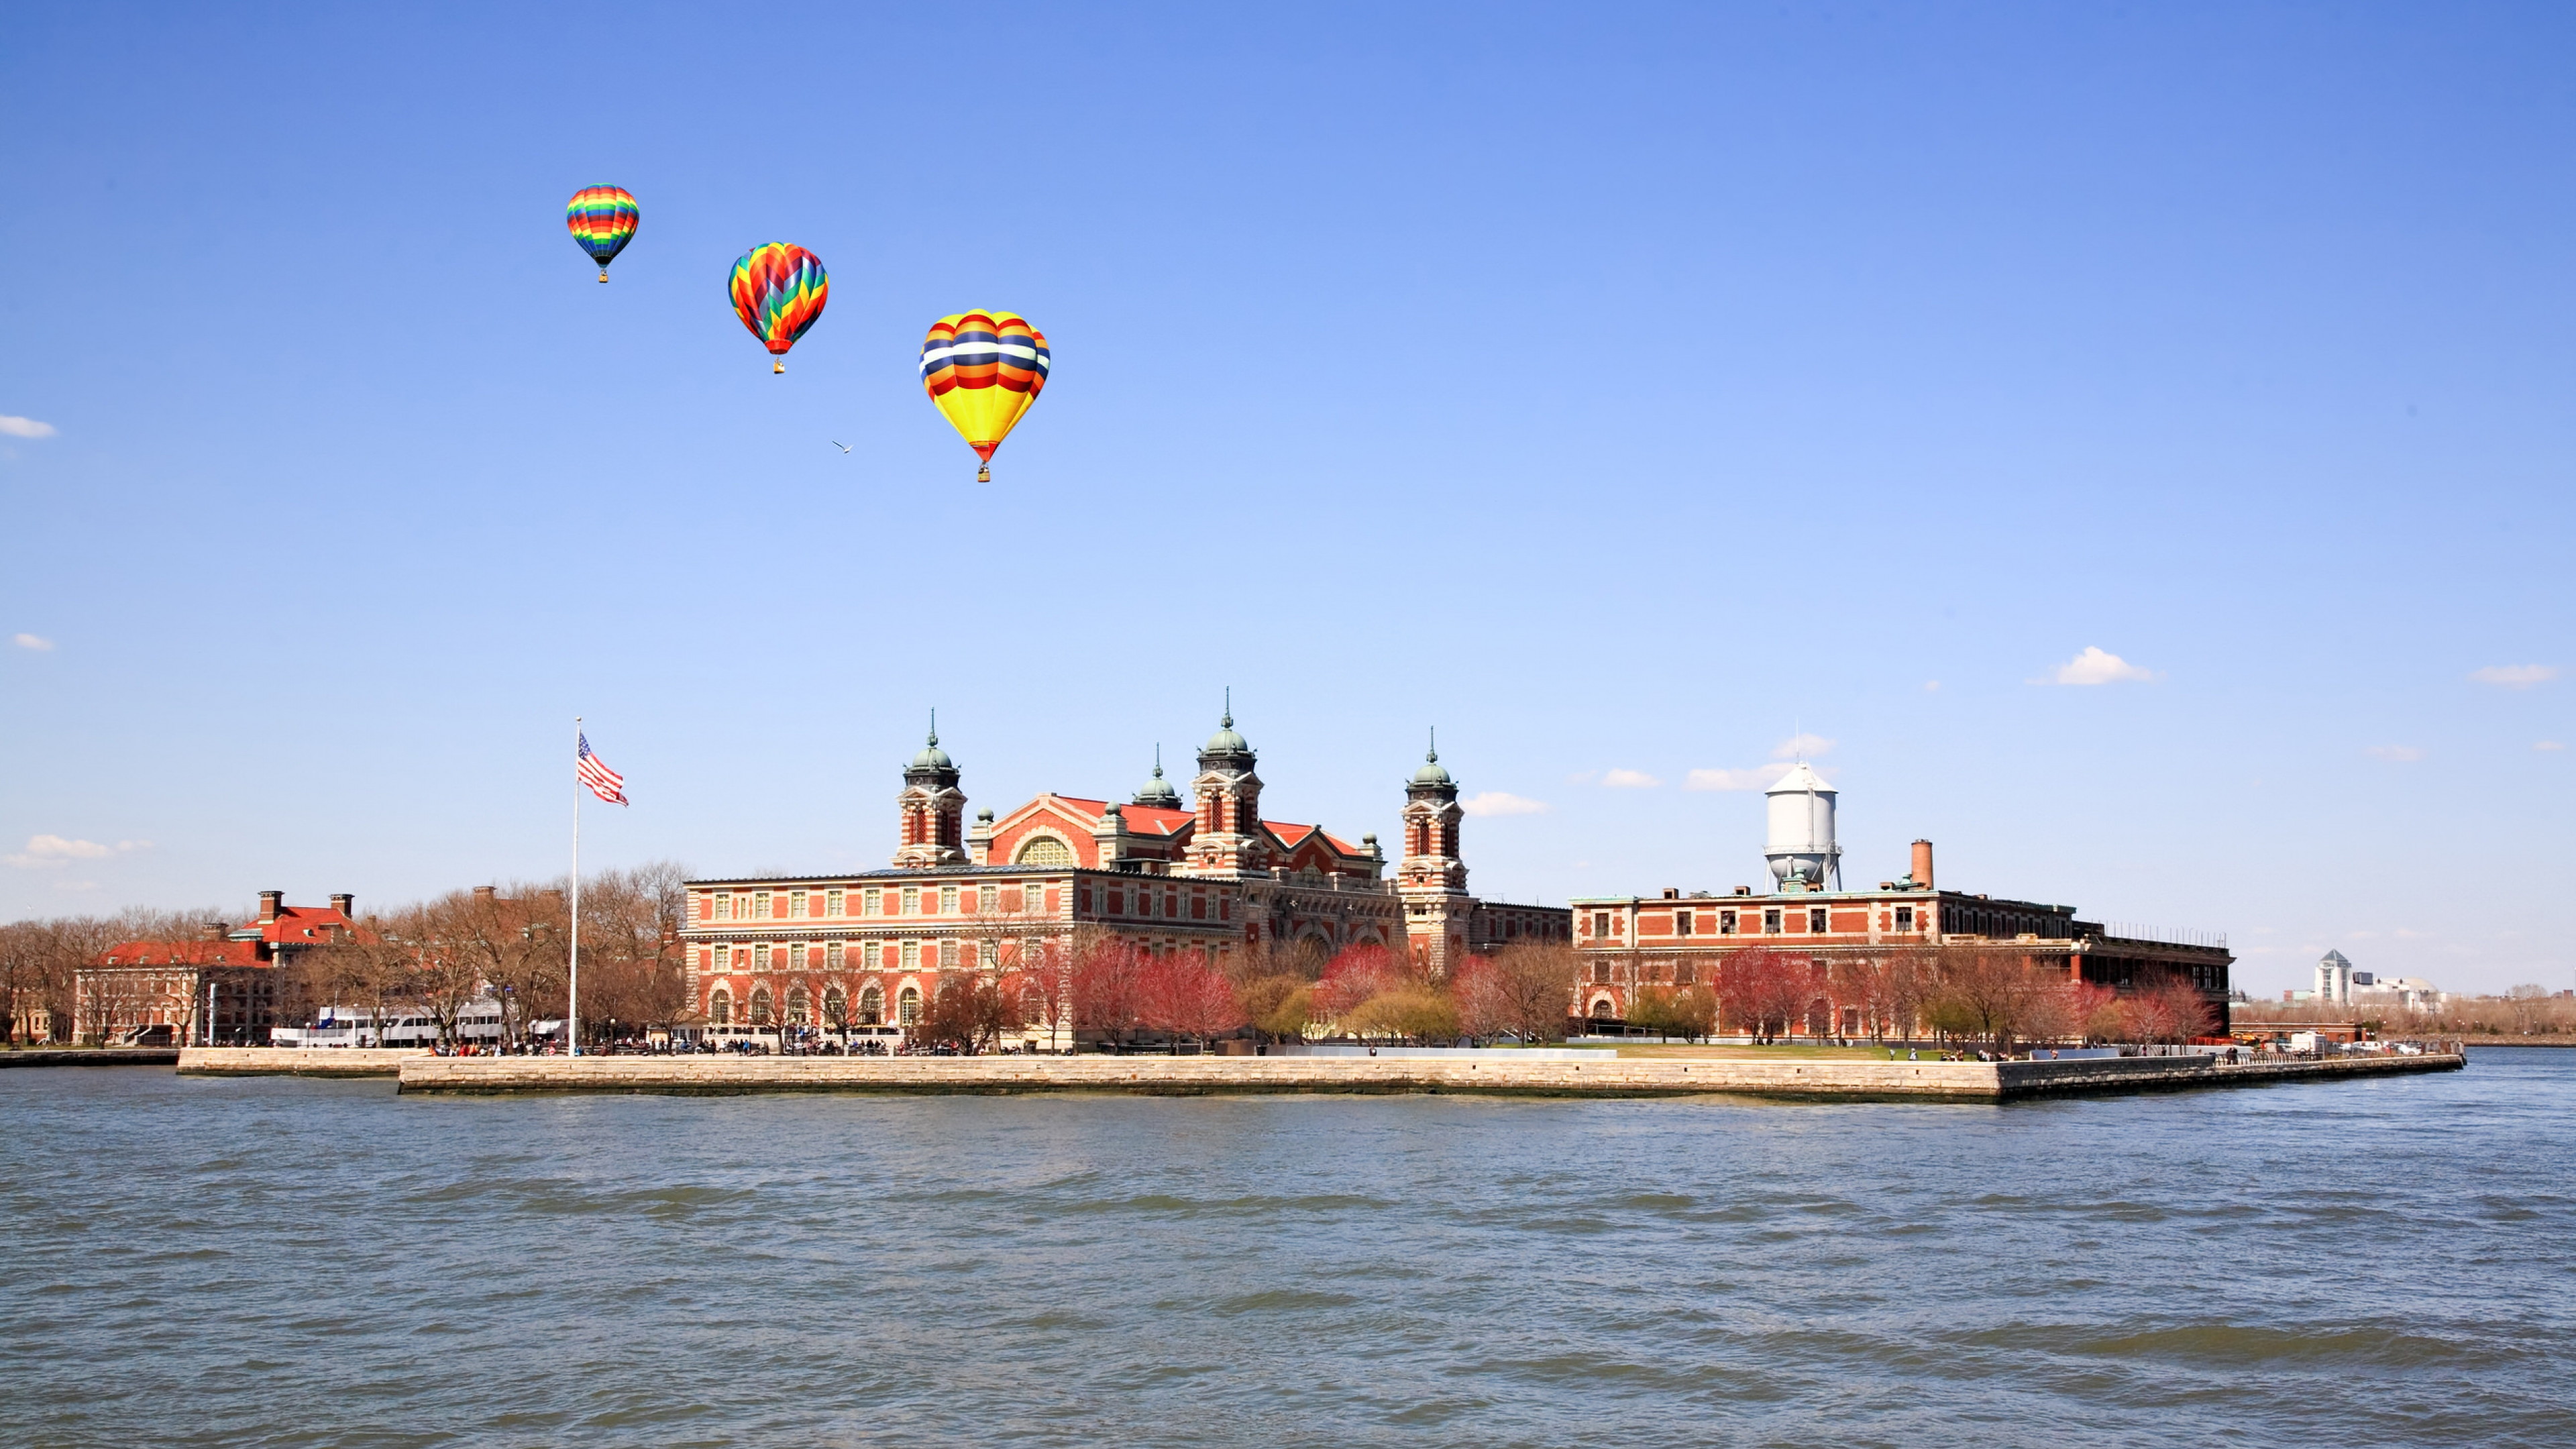 Hot air balloons floating over Elis Island